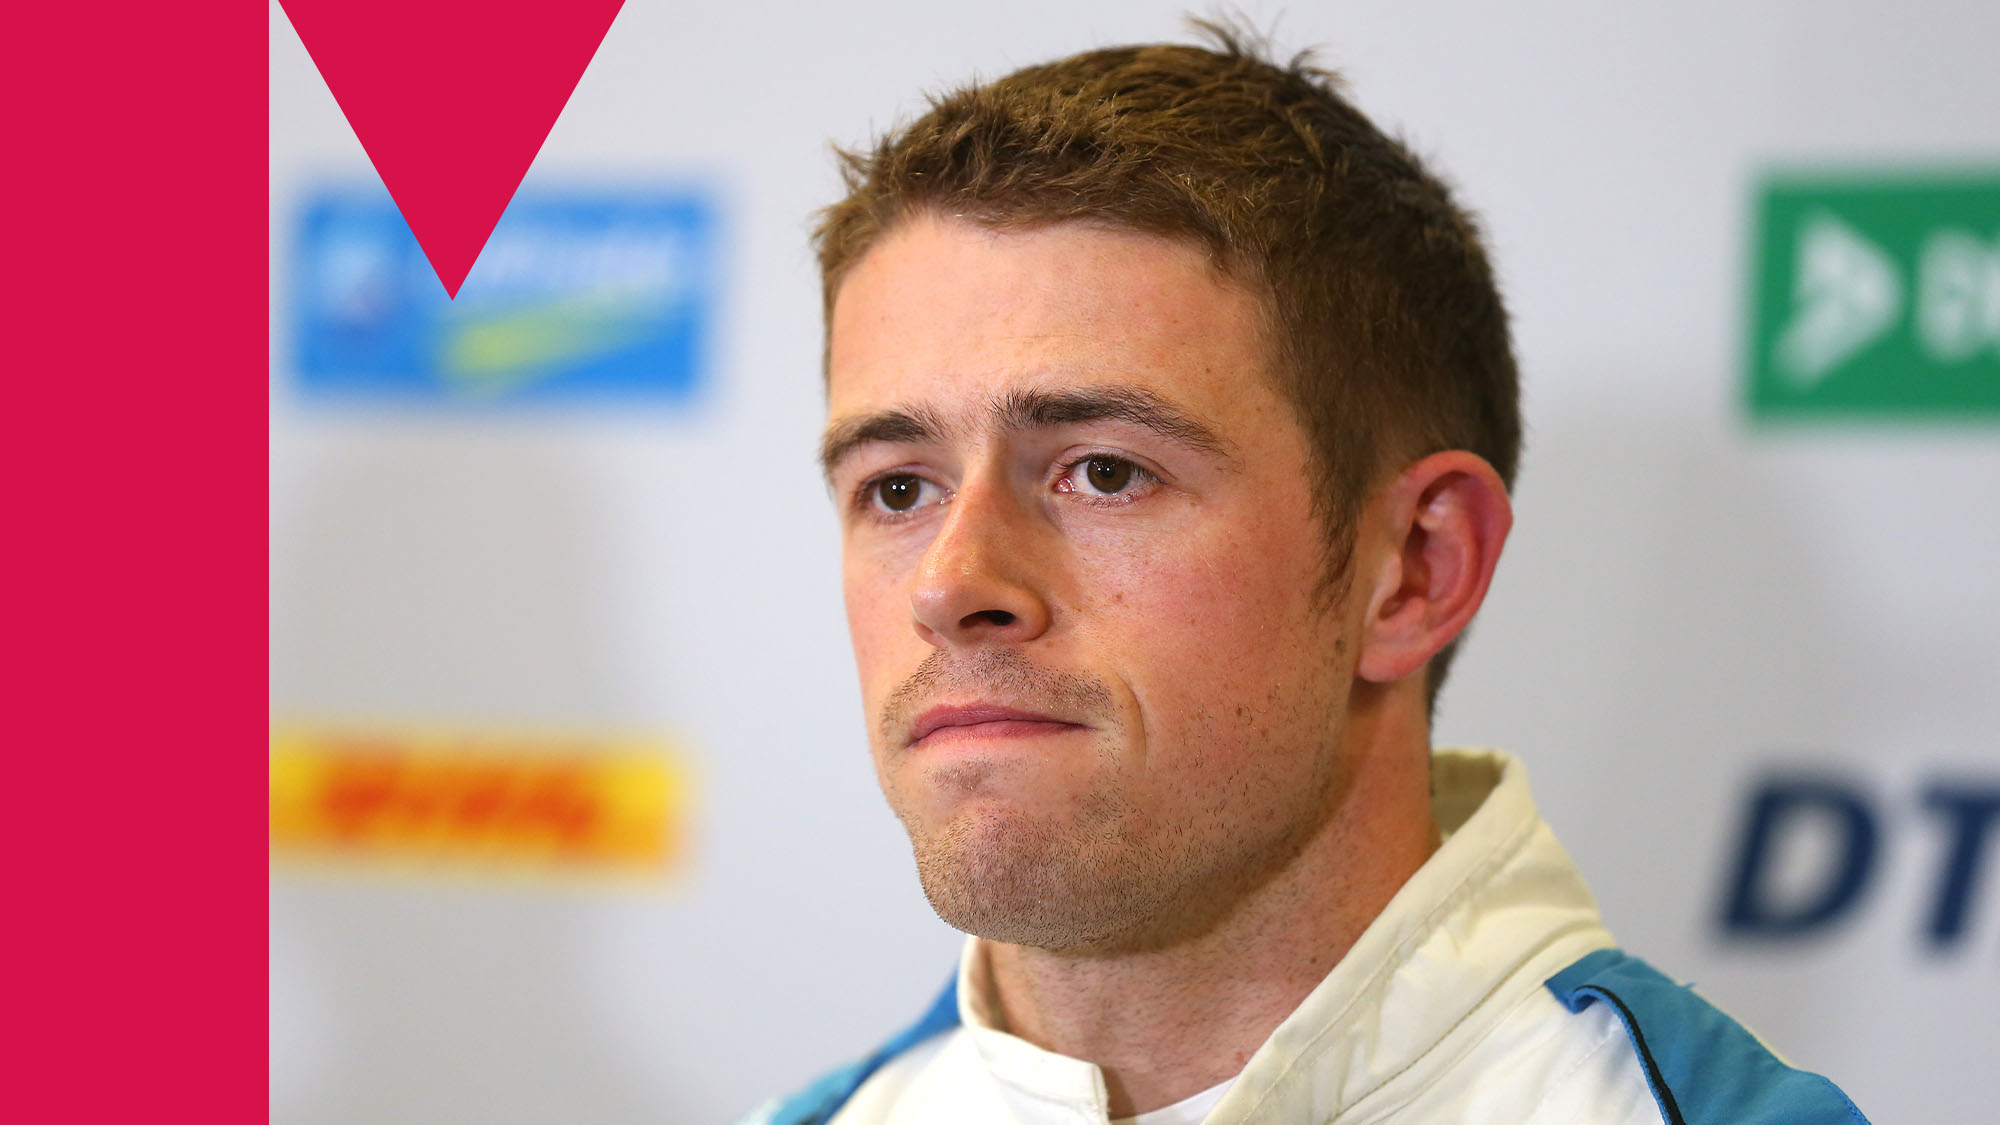 NUREMBERG, GERMANY - JULY 05: Paul Di Resta of Great Britain and R-Motorsport attends a press conference at the DTM 2019 German Touring Car Championship at Norisring on July 05, 2019 in Nuremberg, Germany. (Photo by Alexander Hassenstein/Bongarts/Getty Images)